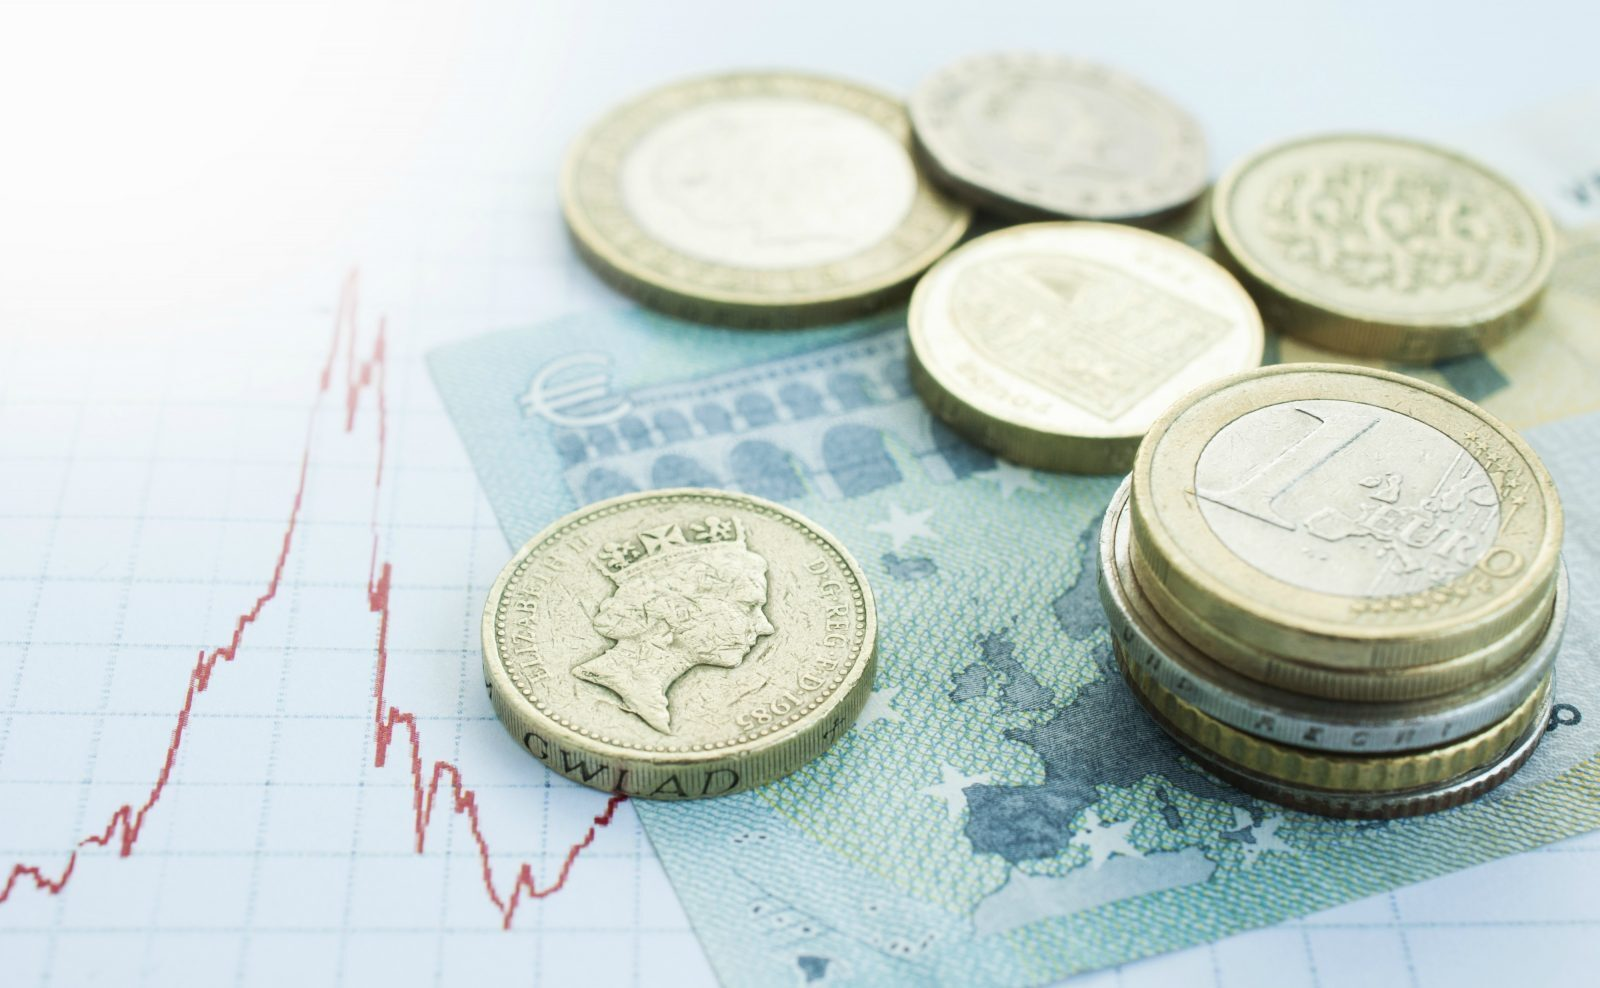 Corp-DCN-further-weakness-sterling